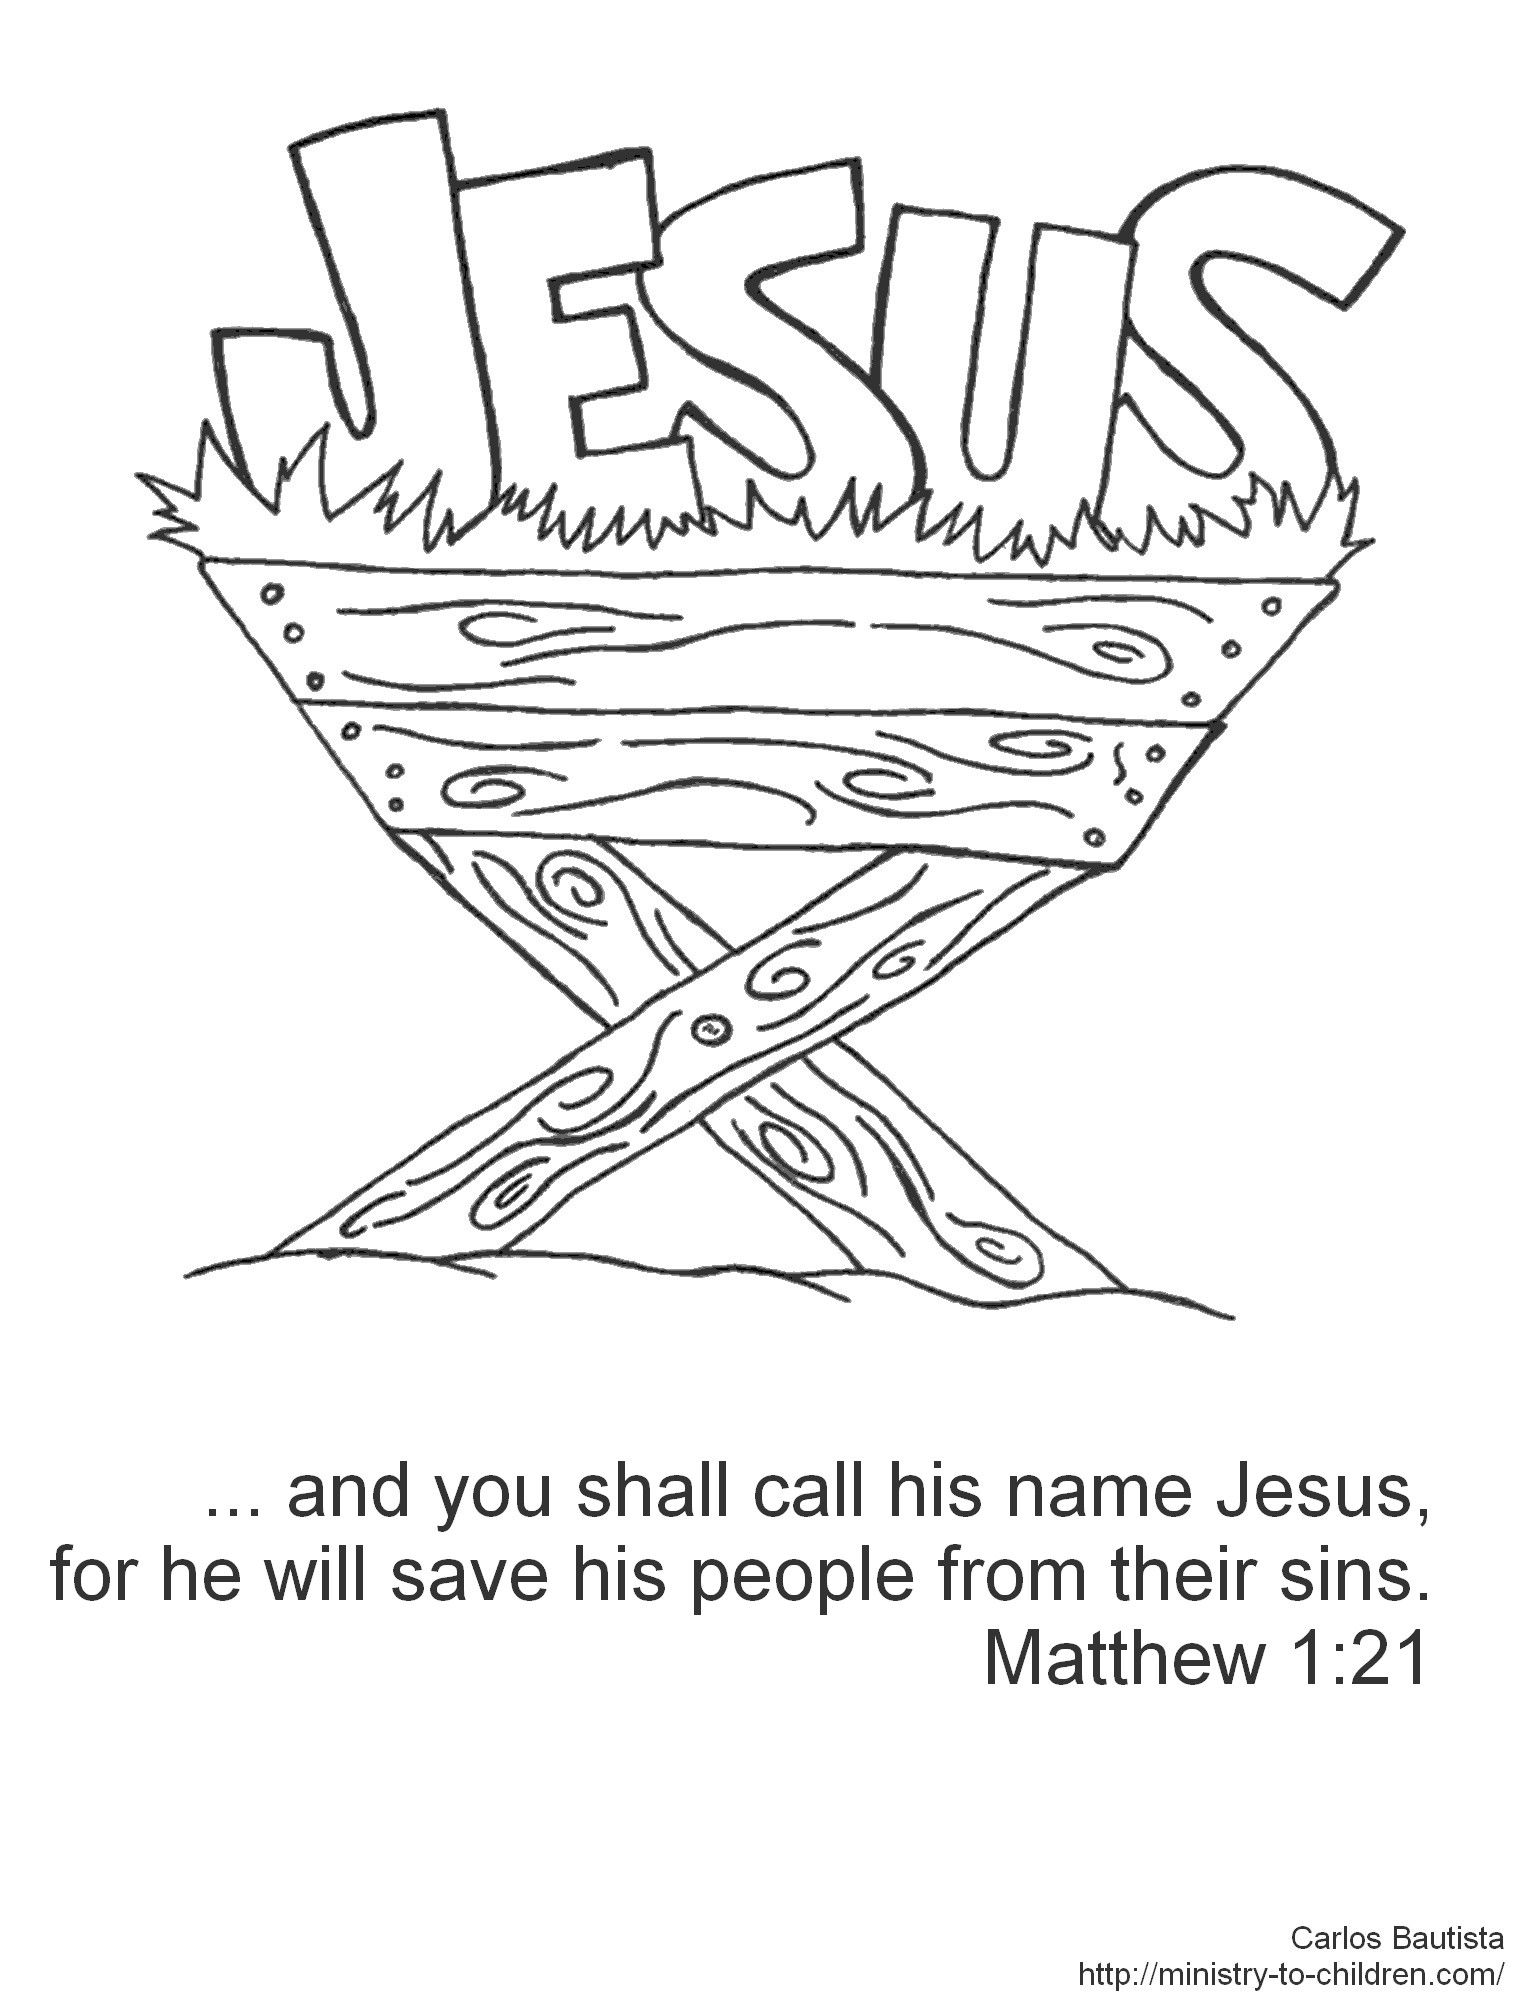 Thanksgiving coloring pages with bible verses - Bible Verses Jesus Coloring Pages More